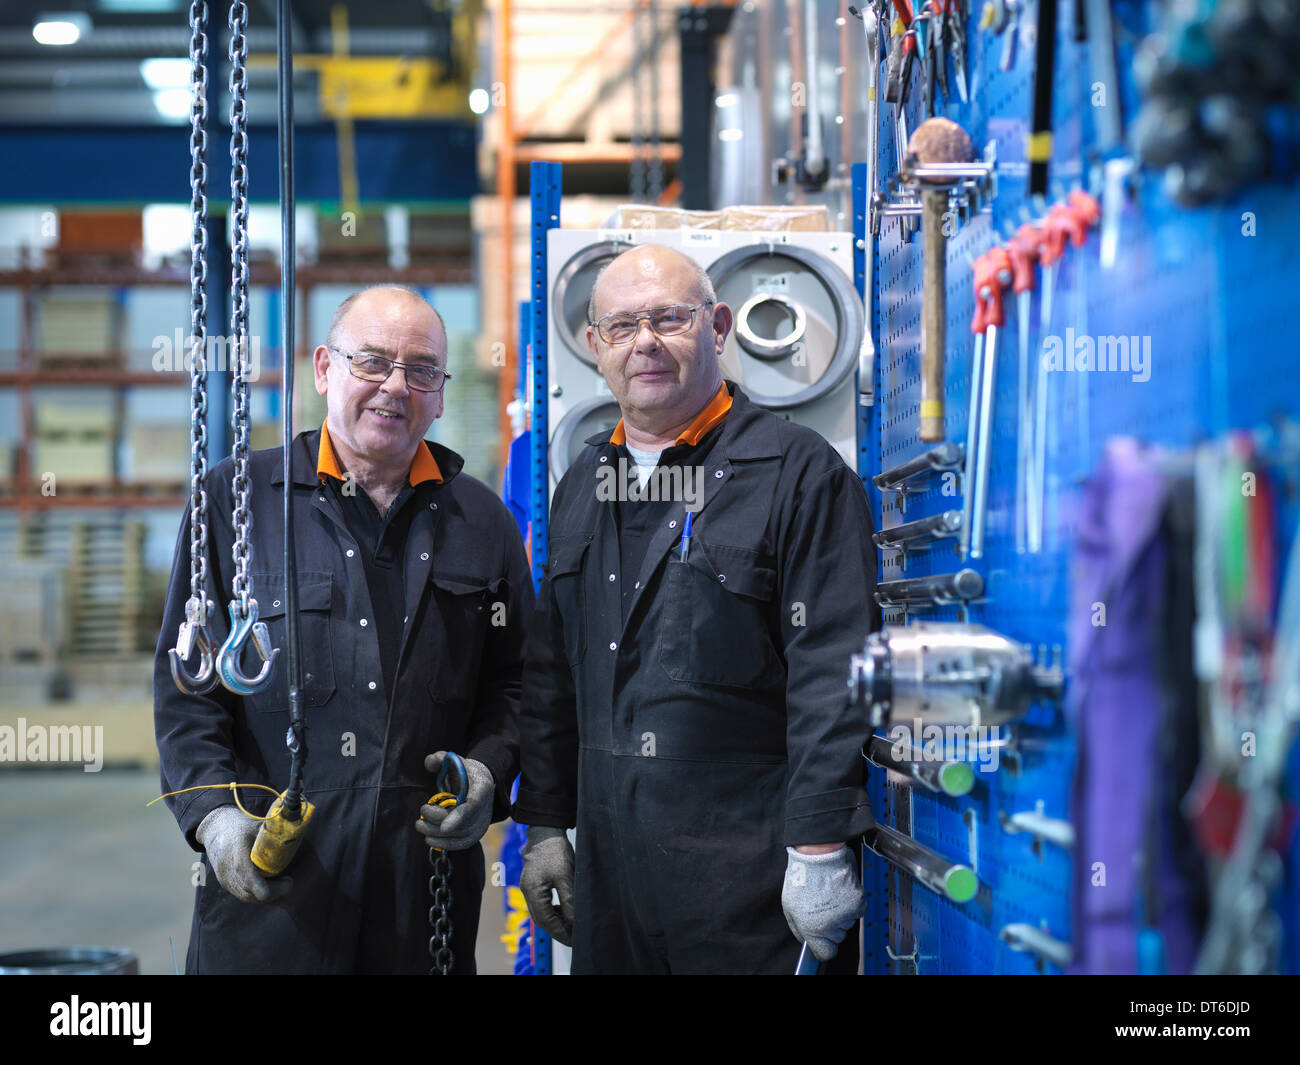 Mature engineers working in engineering factory, portrait - Stock Image